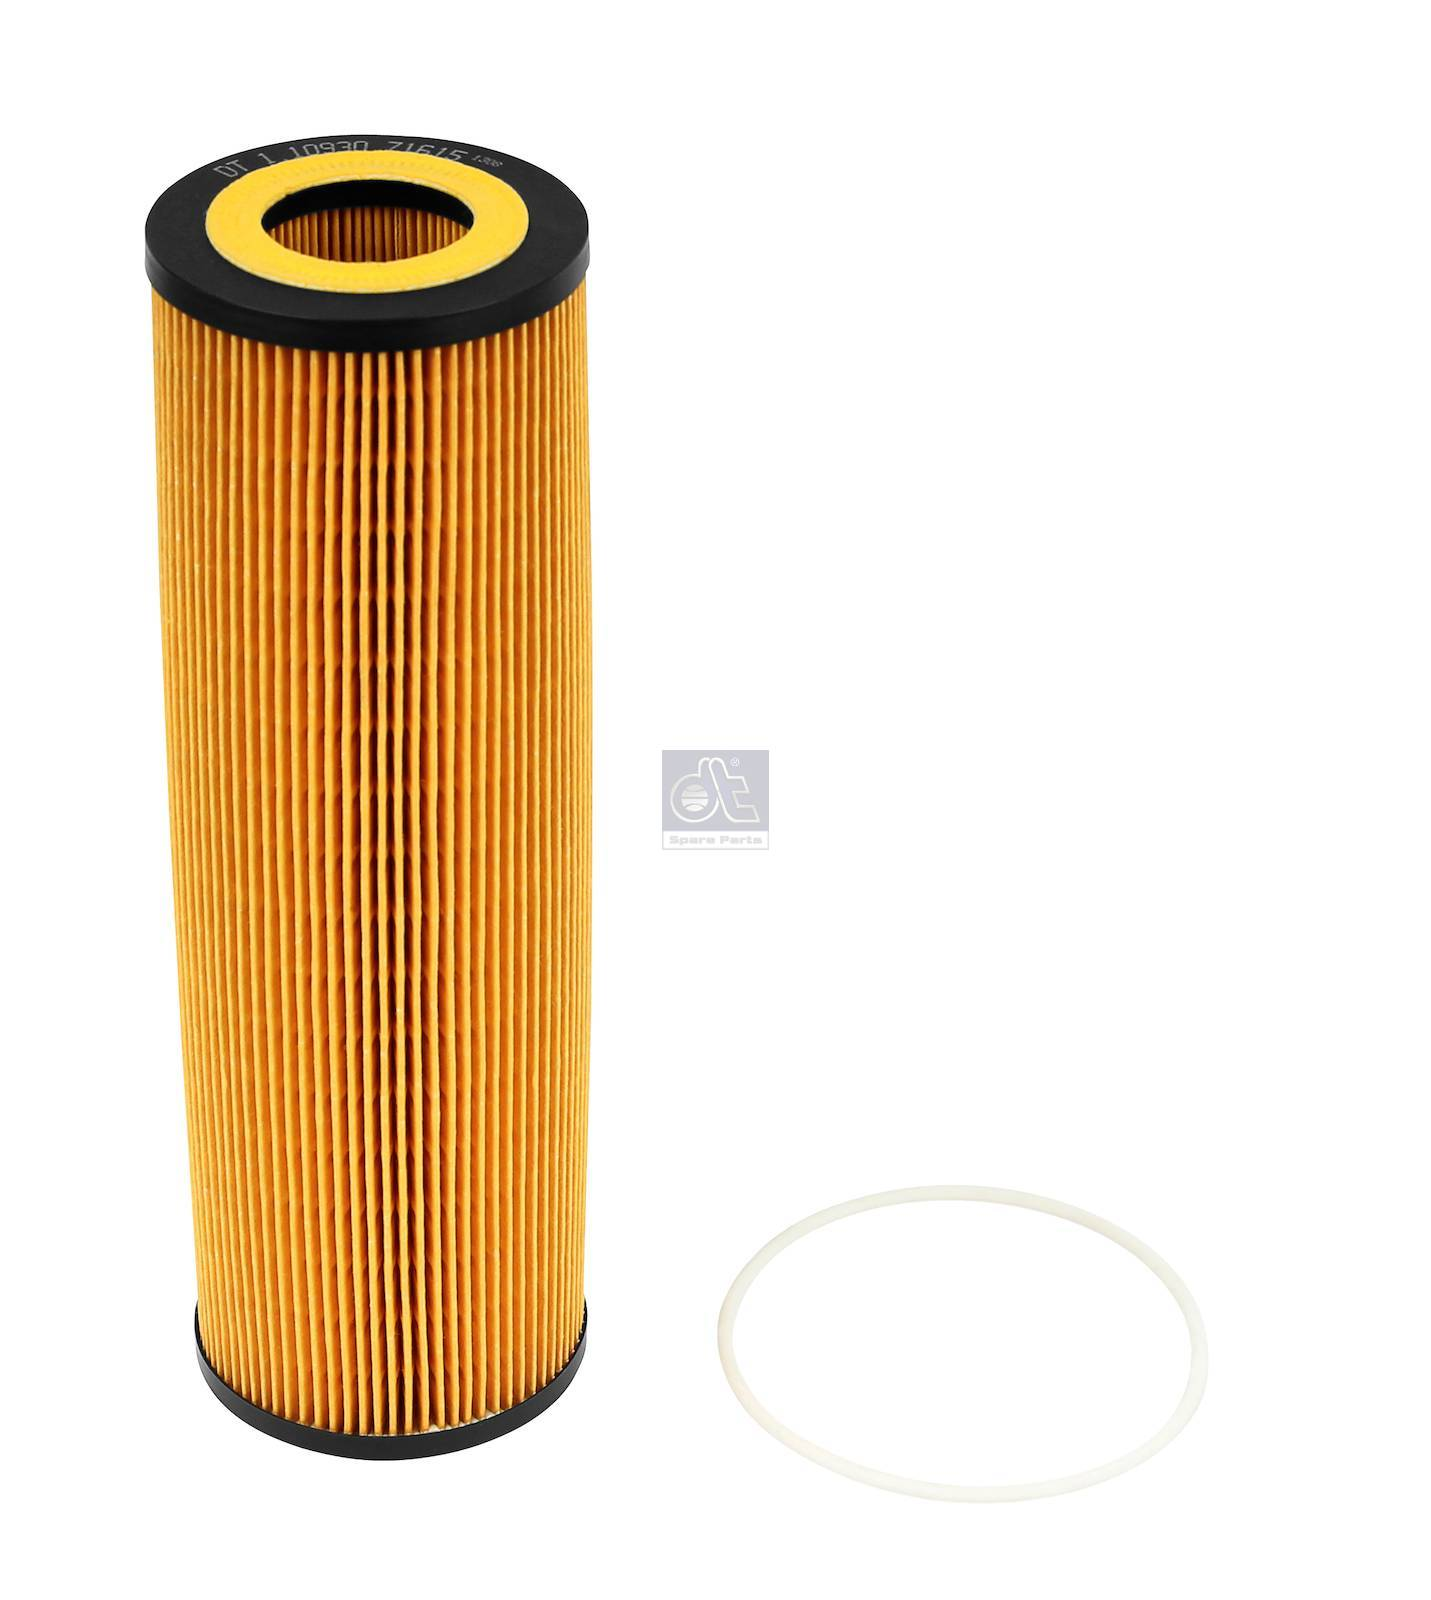 Filter insert, oil cleaner